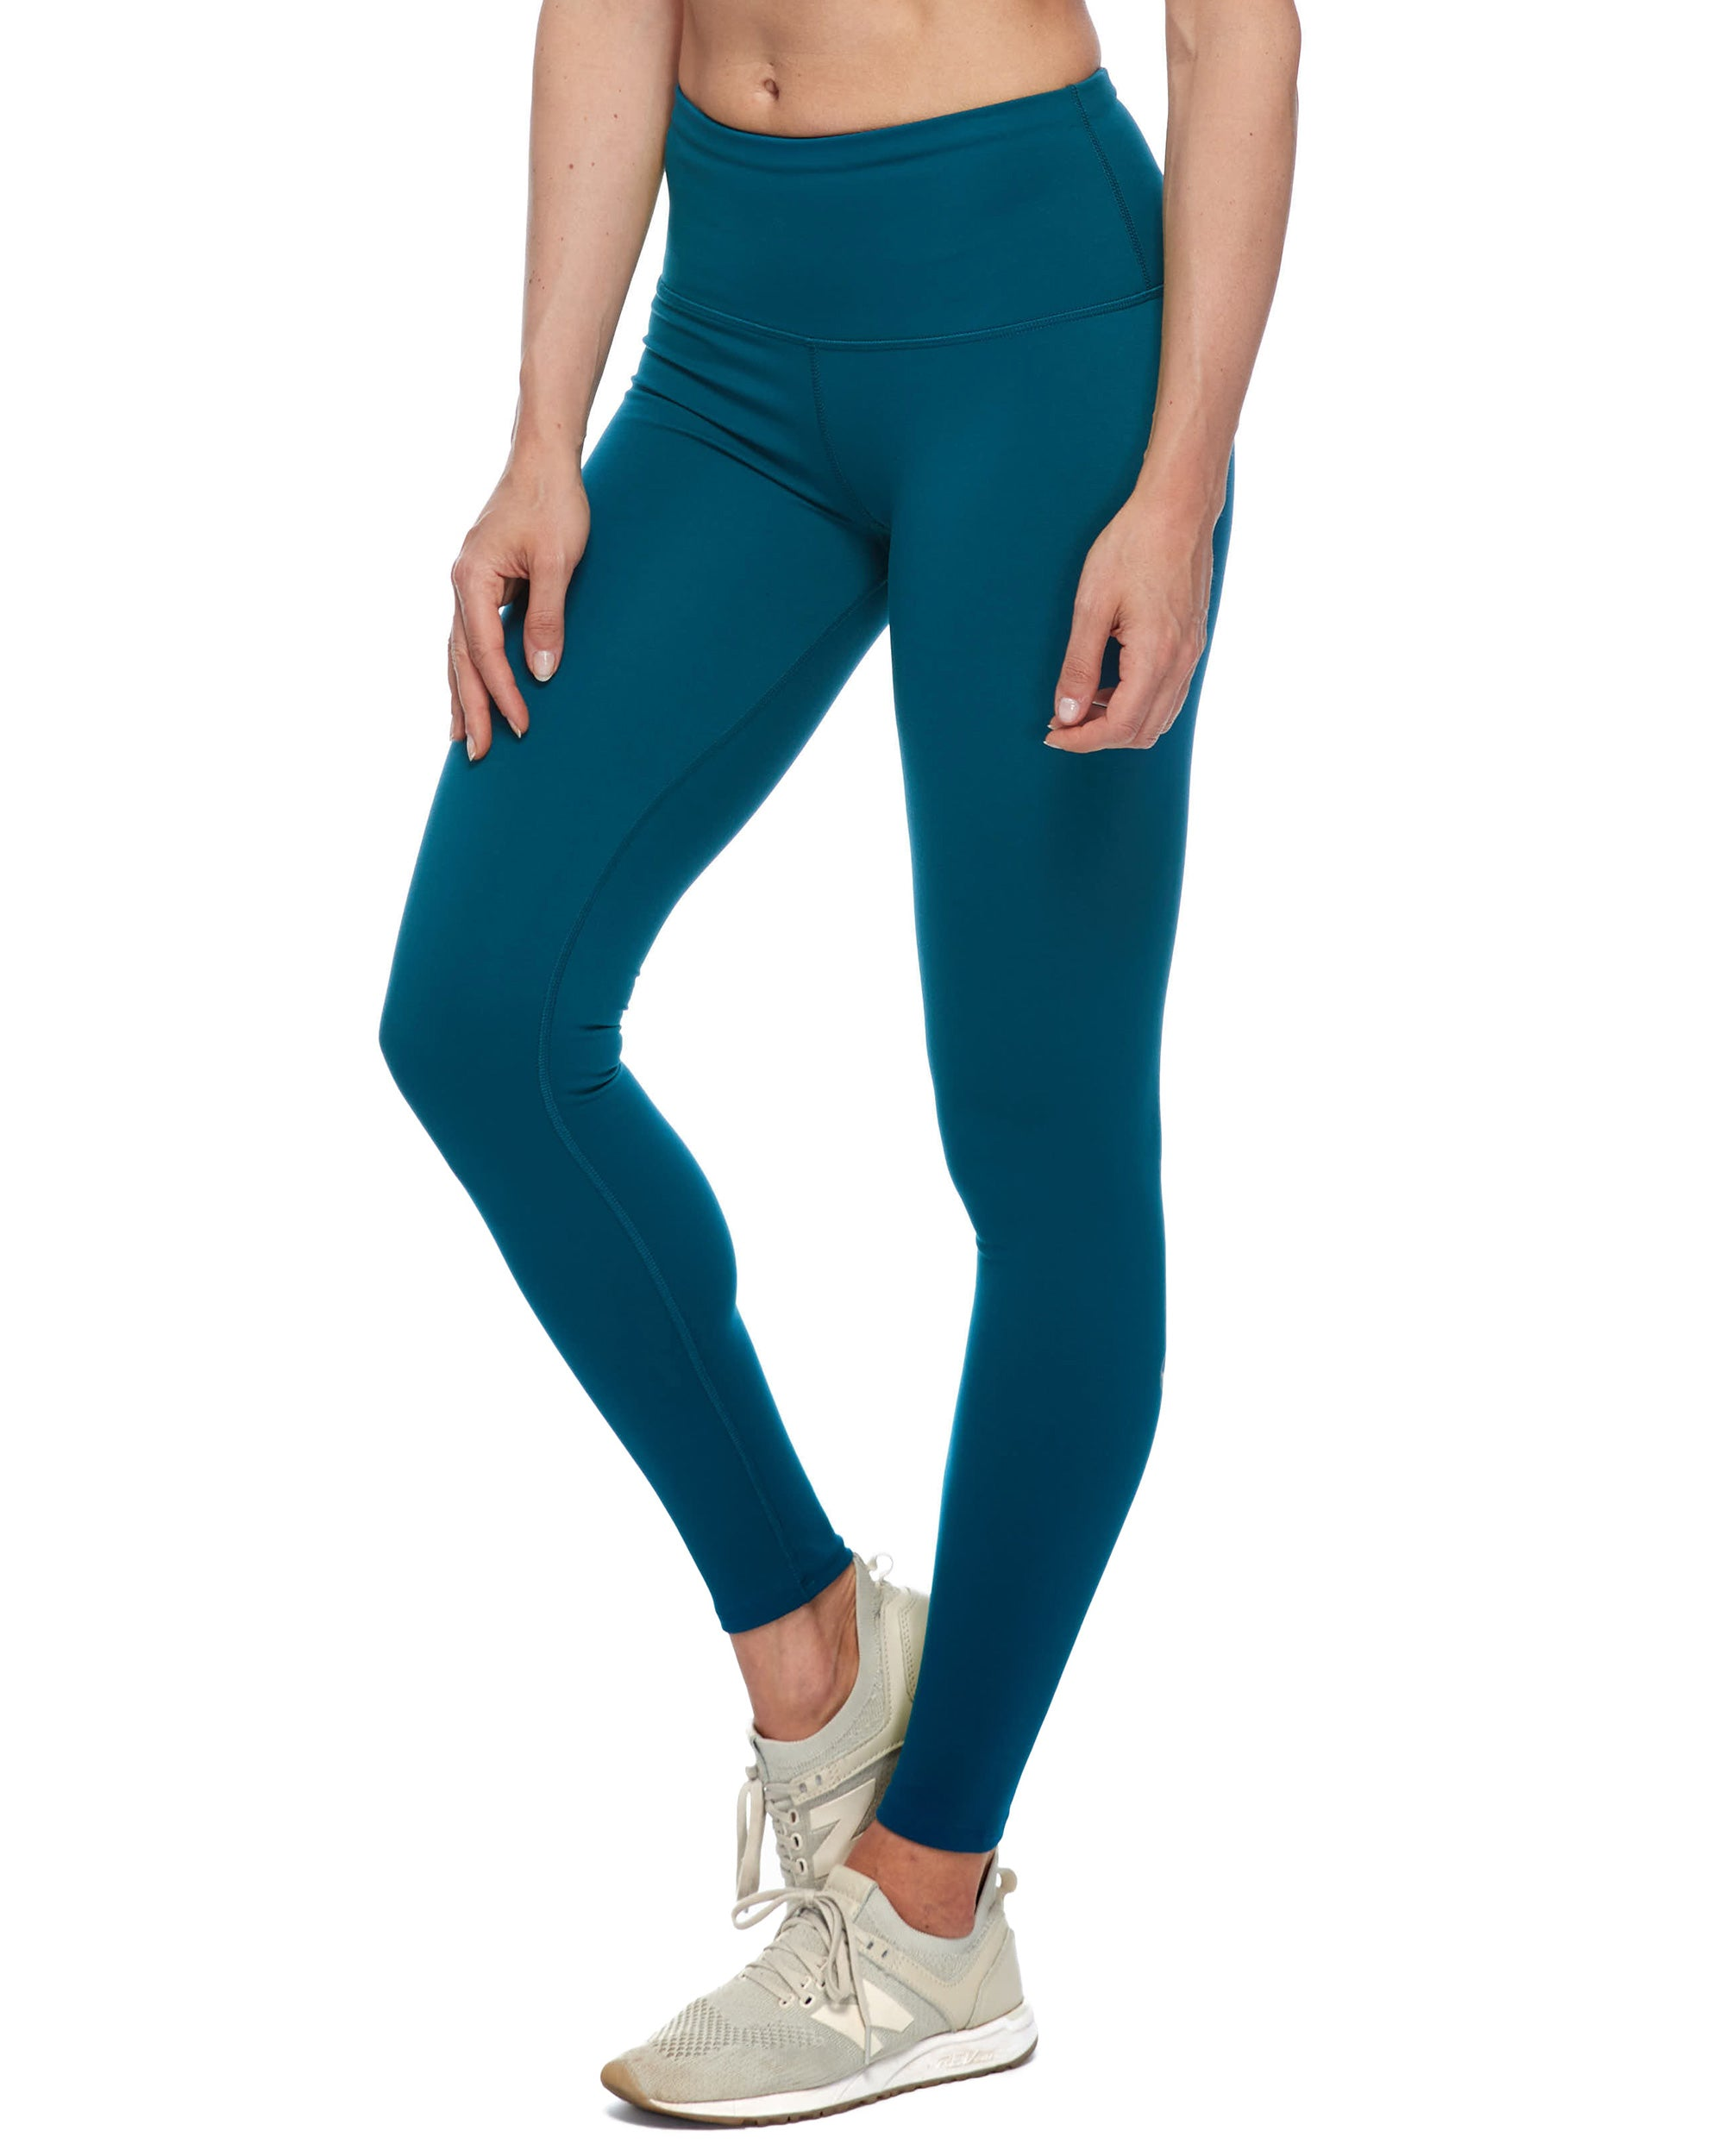 Epsilon Legging - Oceanic